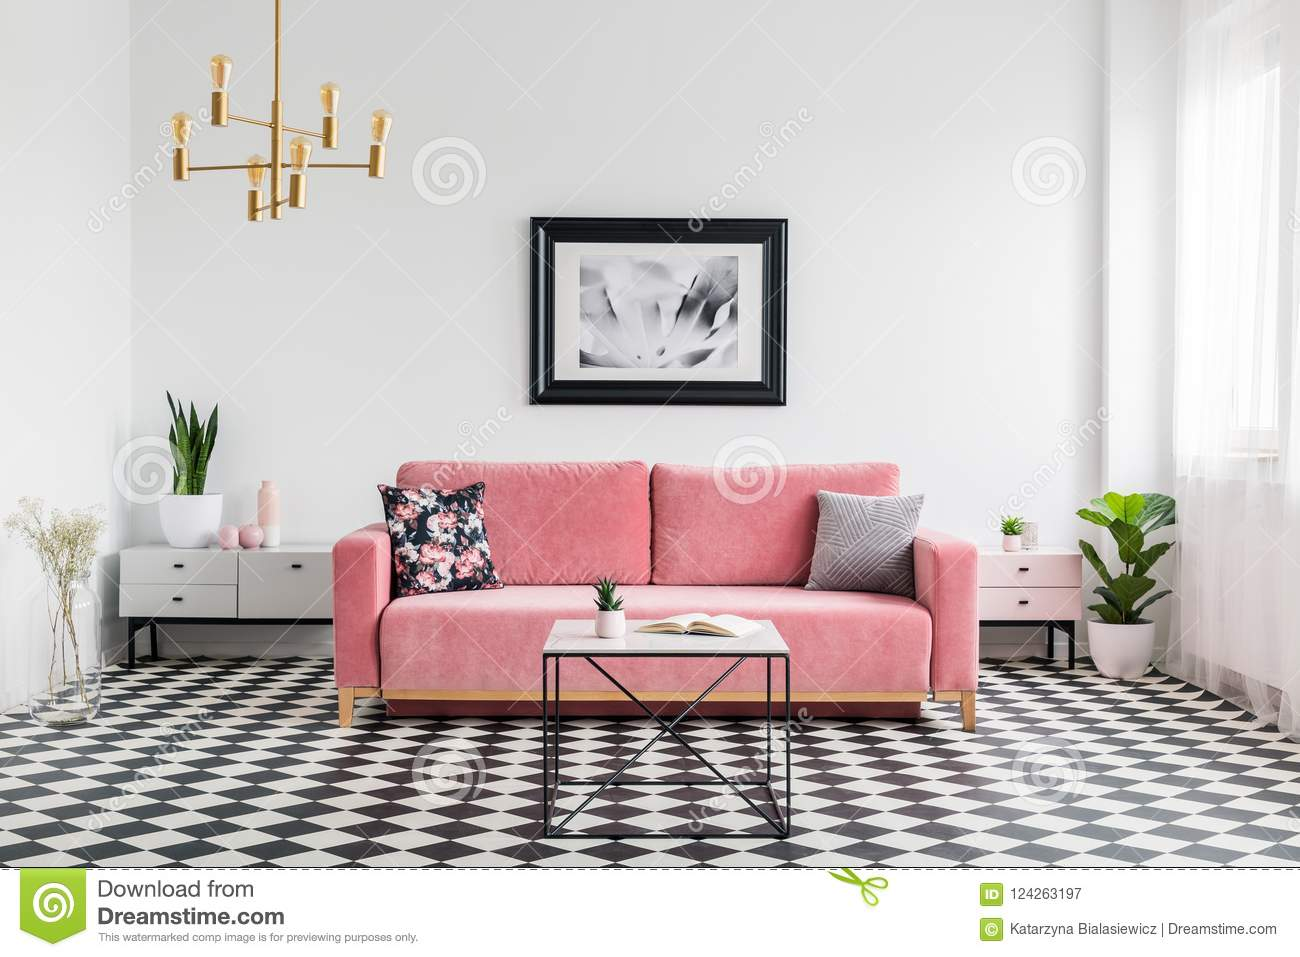 Tremendous Pillows On Pink Sofa In Spacious Living Room Interior With Interior Design Ideas Gentotthenellocom